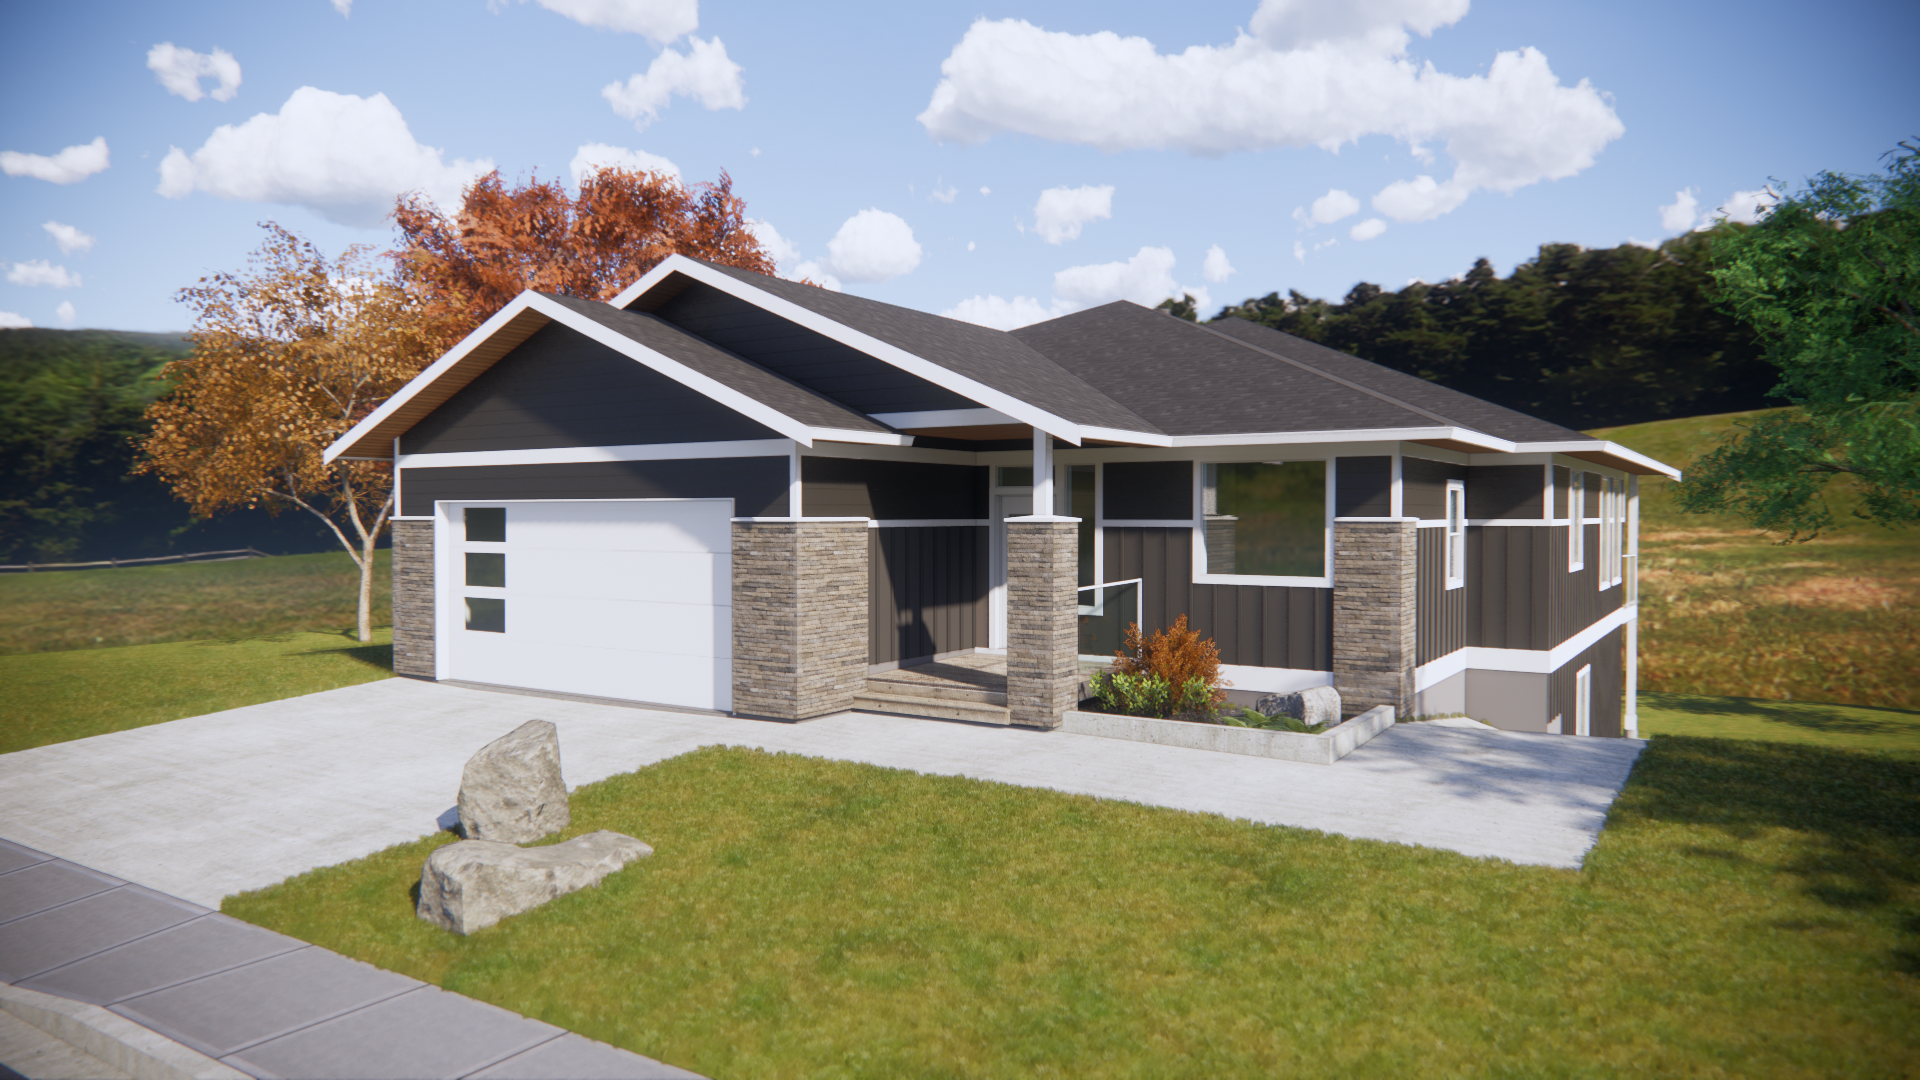 FEATURED LISTING: 50 15 Avenue Southeast Salmon Arm